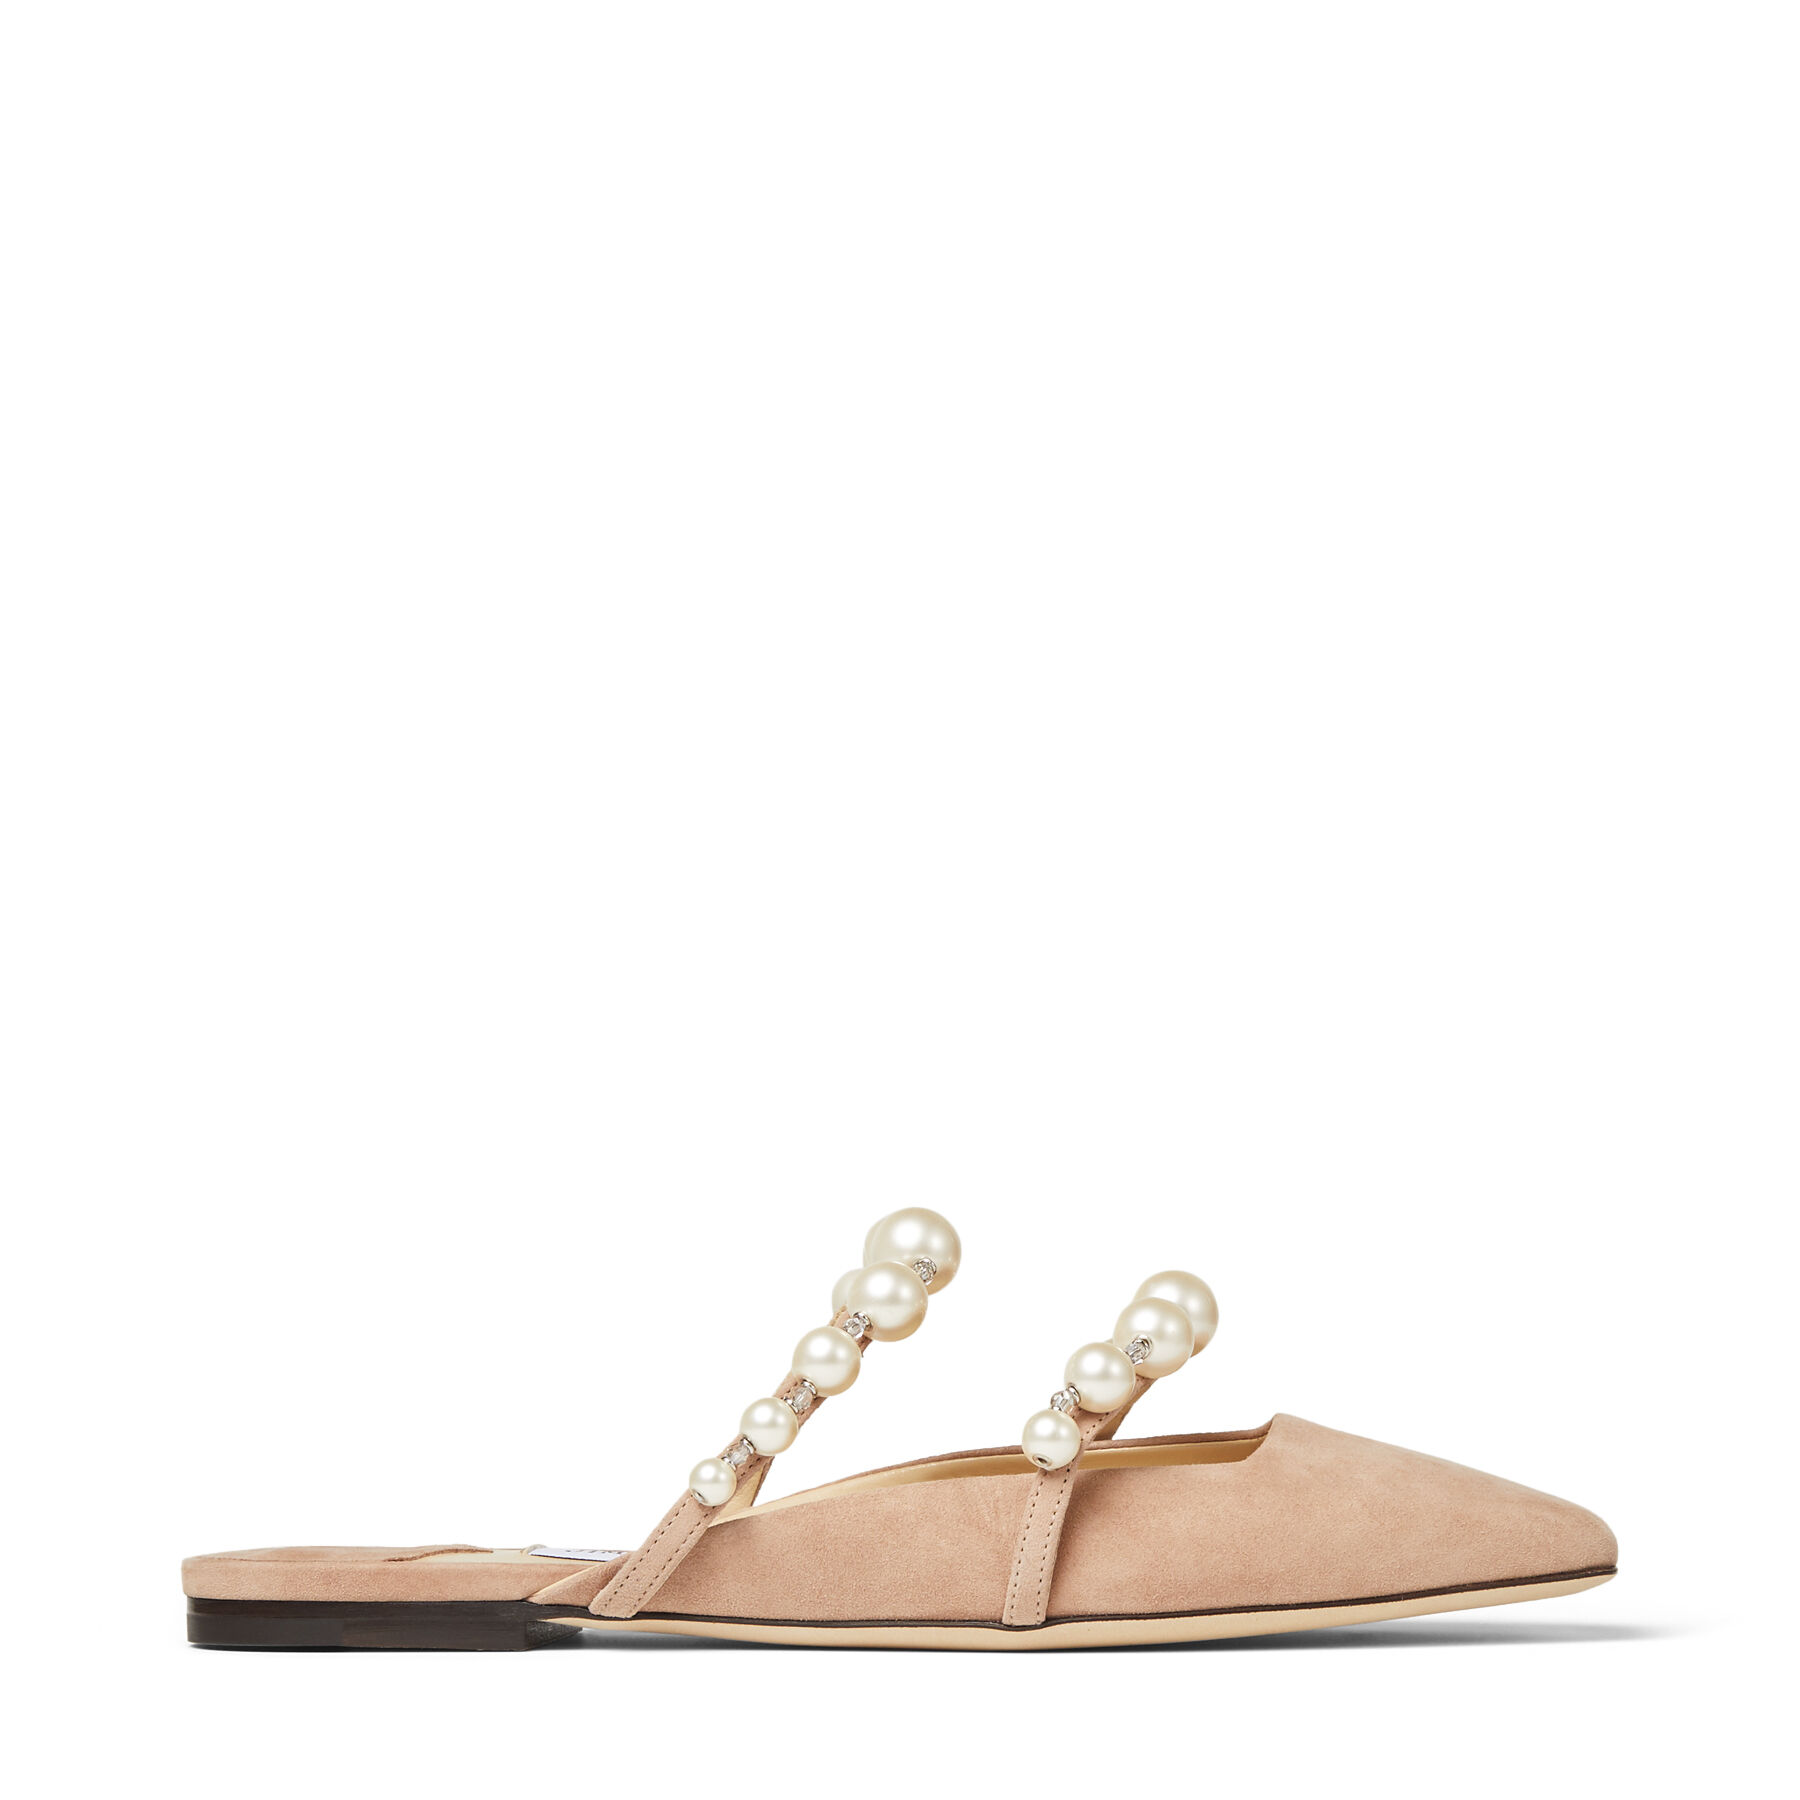 AMAYA FLAT - Ballet Pink Suede Flats with Pearl Embellishment